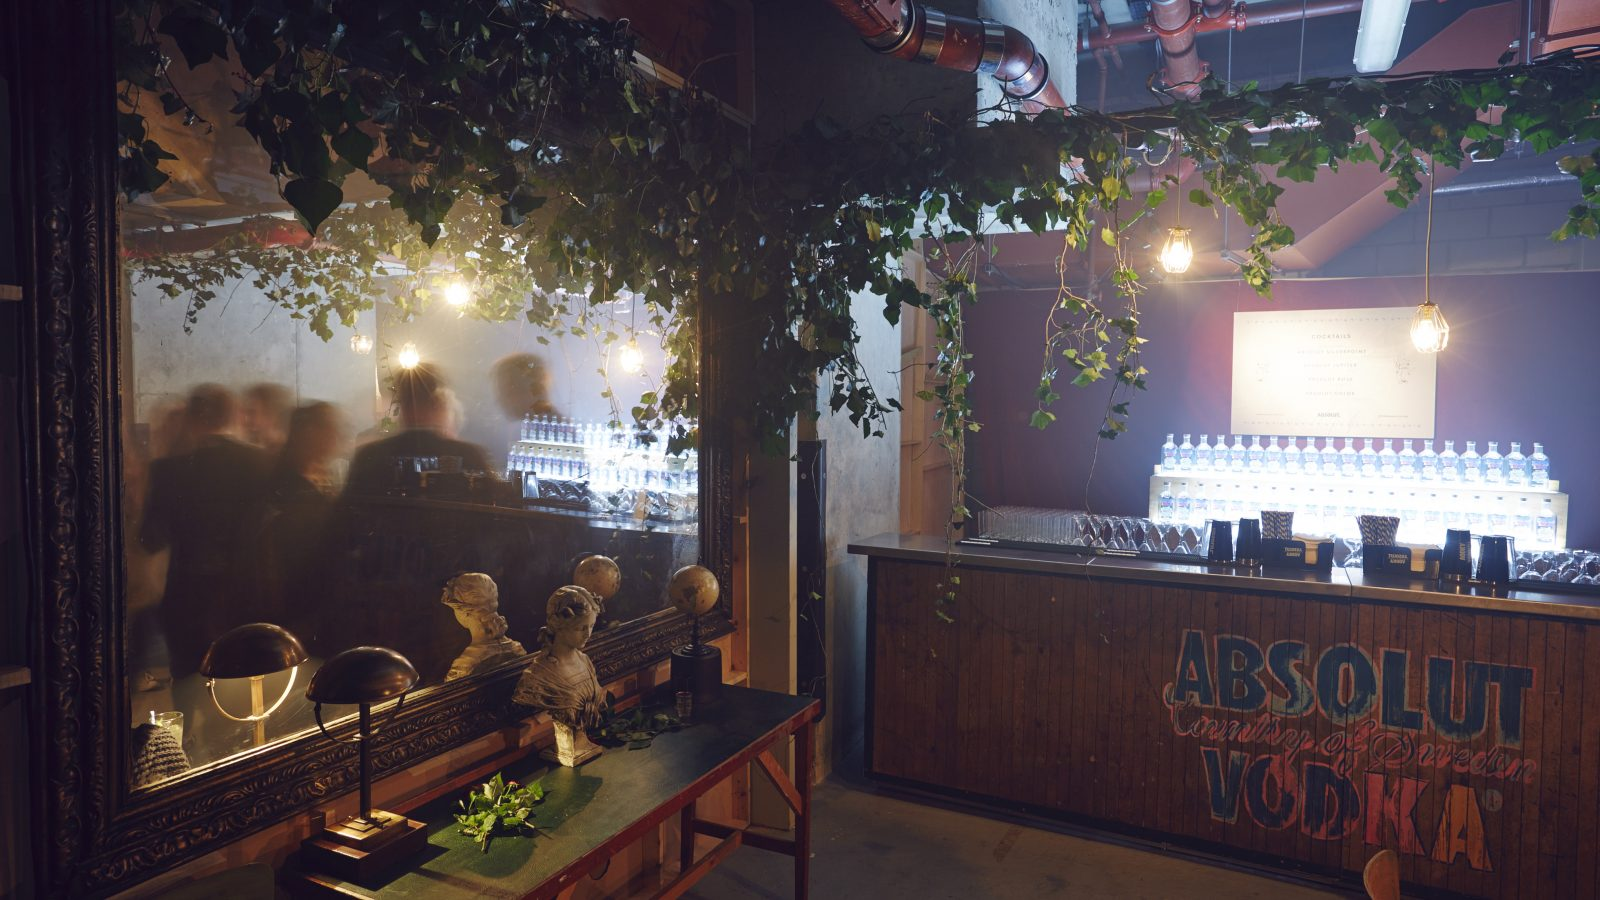 An empty bar with the 'Absolut Vodka' logo on the front of the bar; large mirror and decorative items around the bar